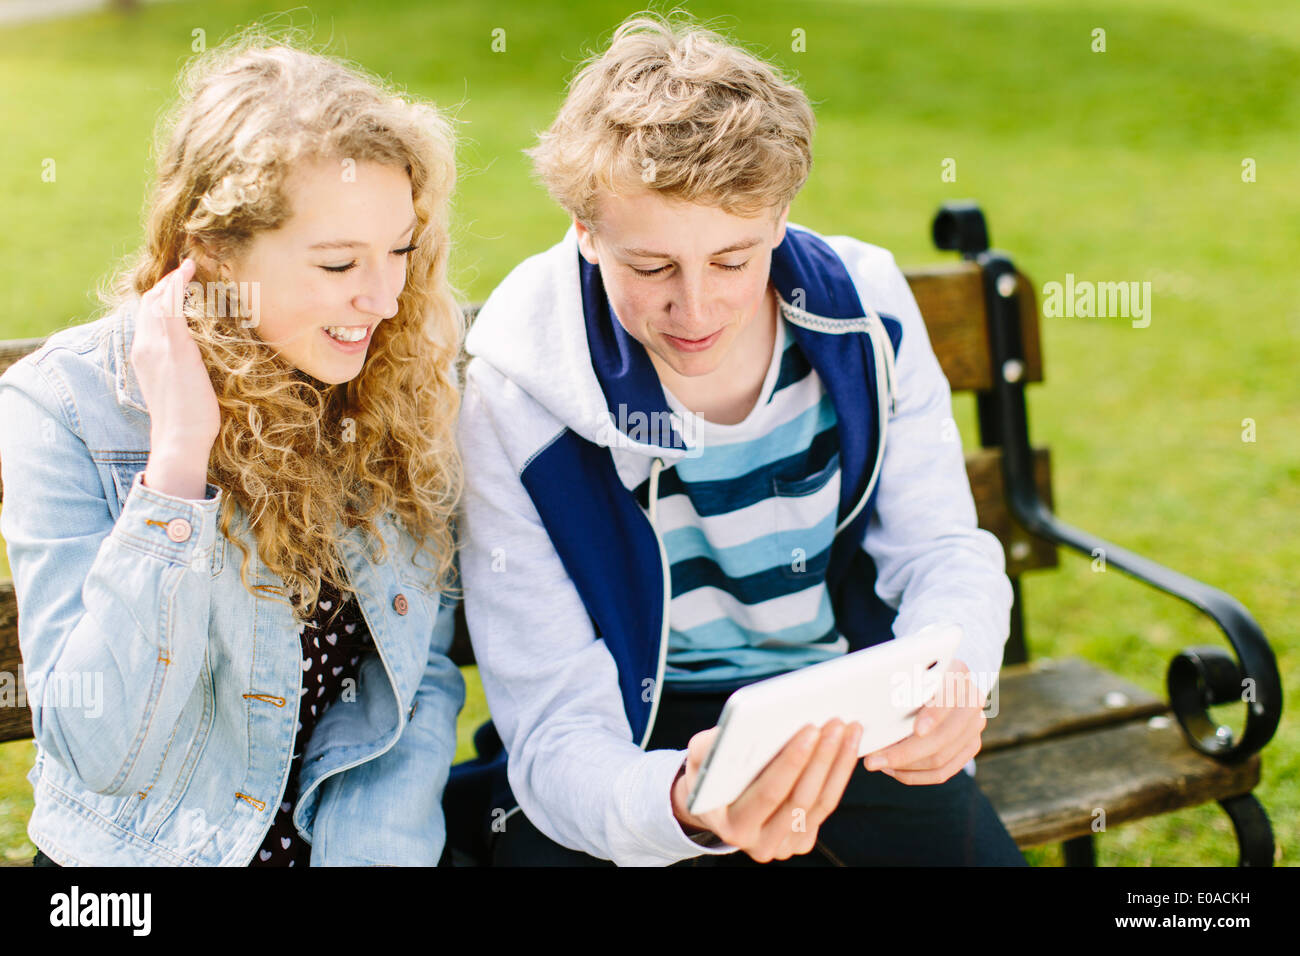 Teenage siblings looking at digital tablet on bench - Stock Image